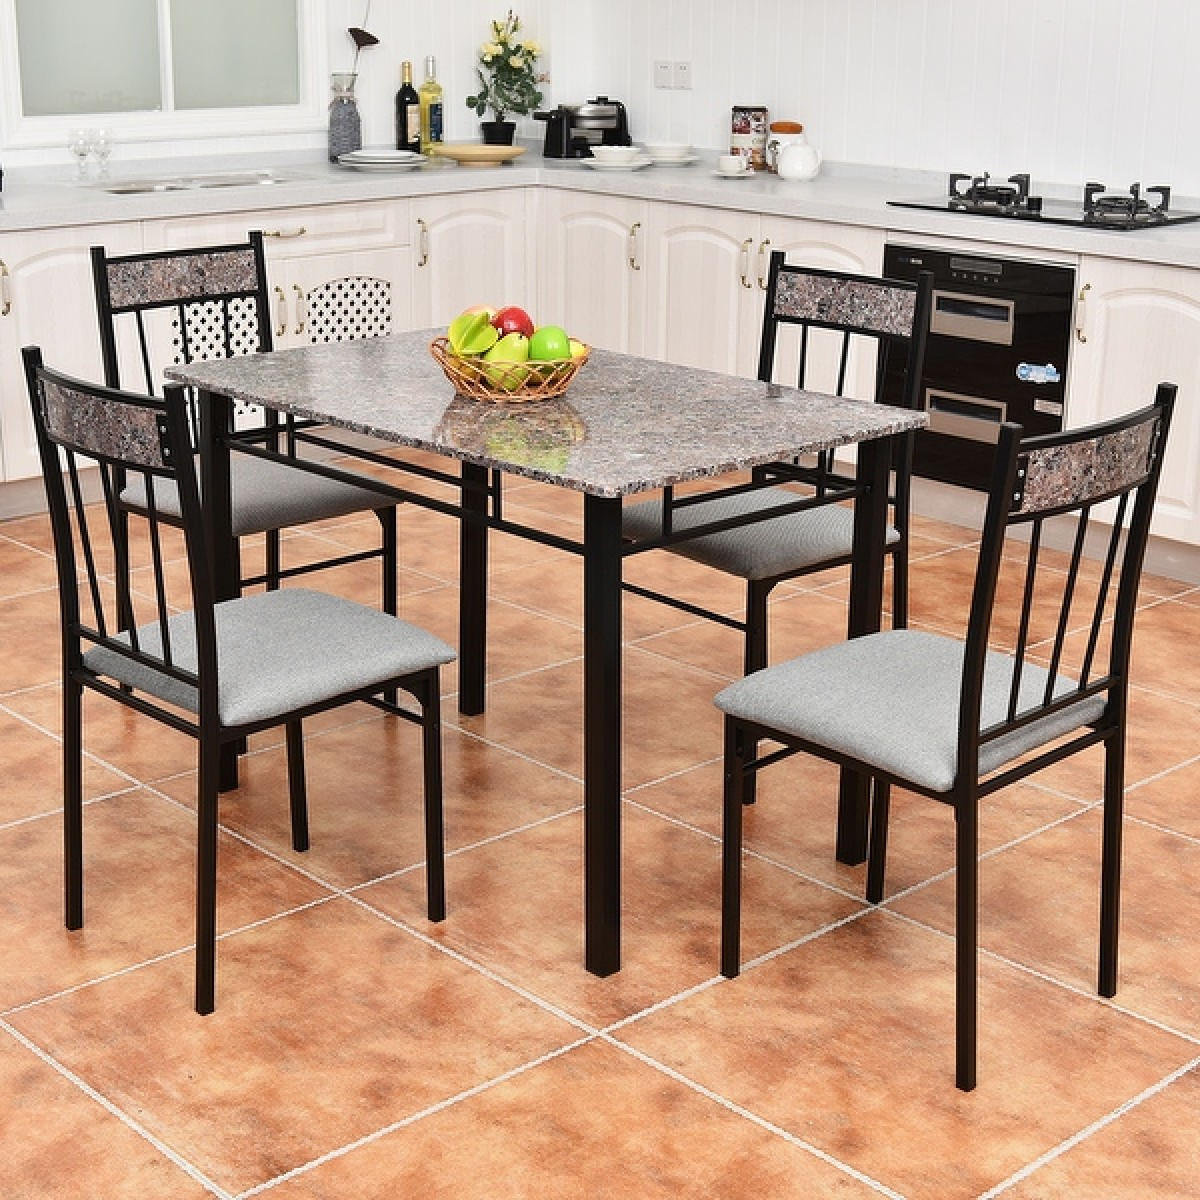 Faux Marbled-Top 5-Piece Dinning Room Set With 4 Breakfast ...